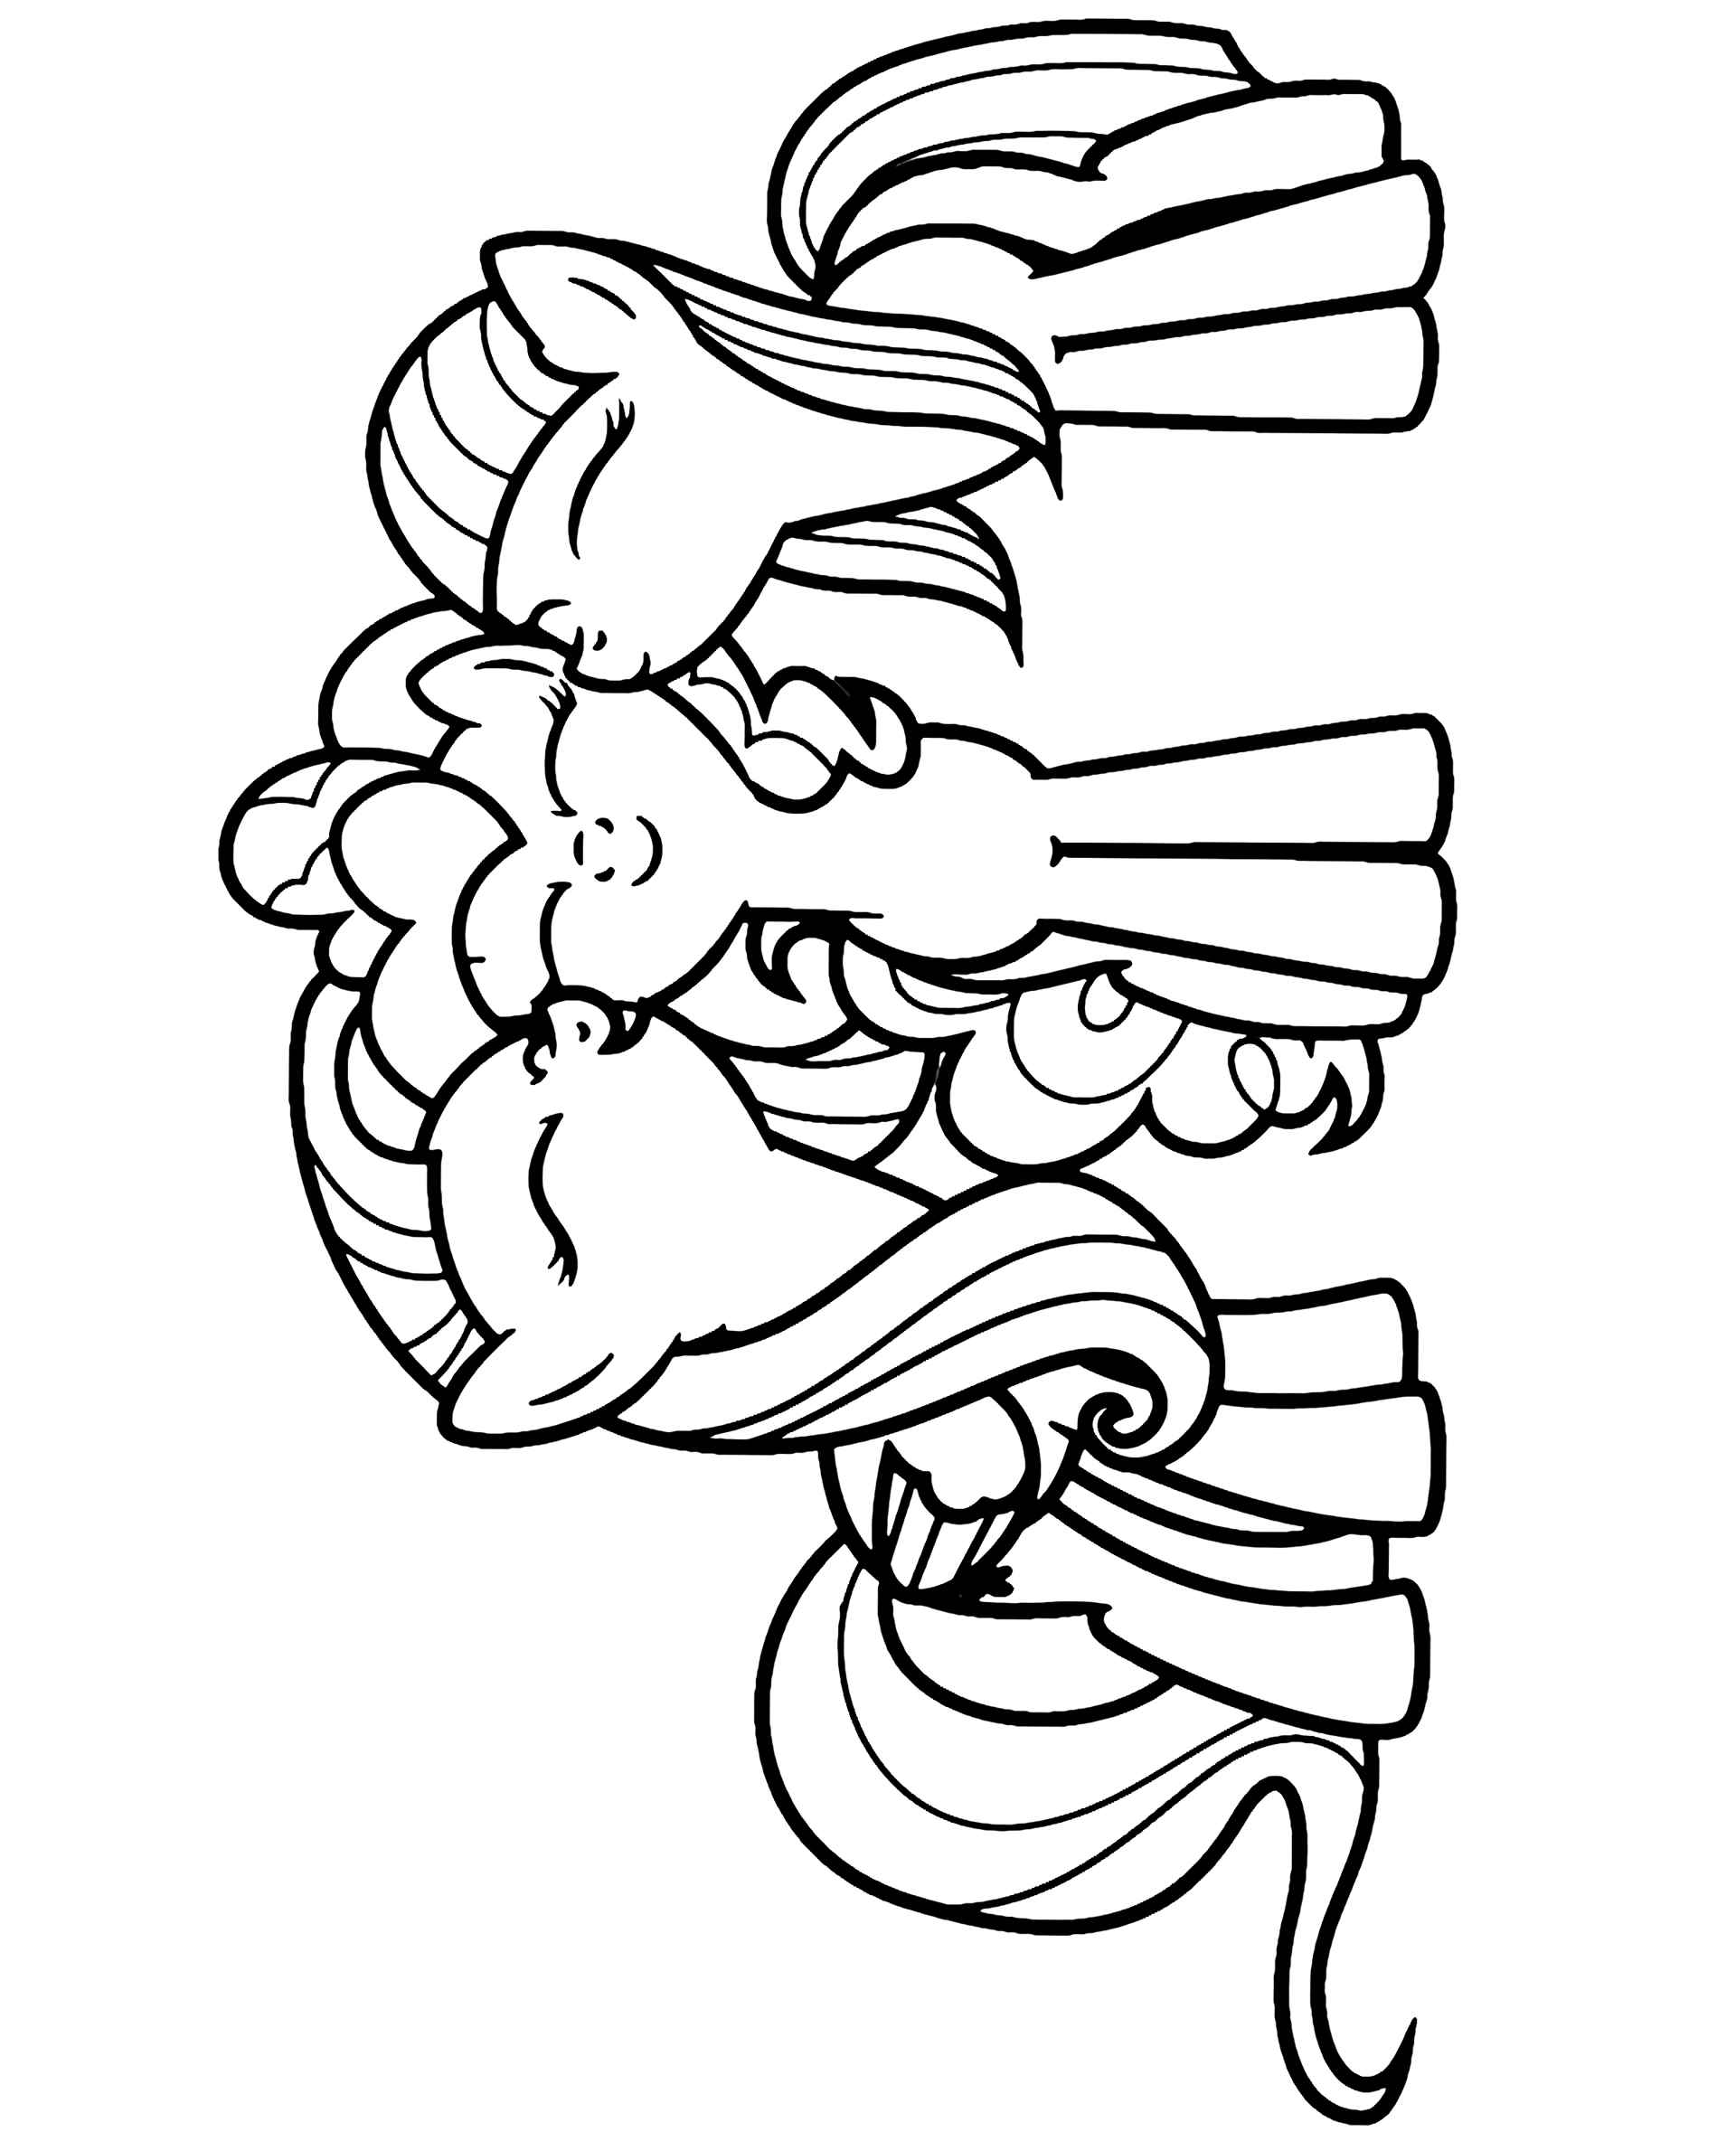 Coloring Sheet Pinkie Pie, Twilight And Fluttershy Hug